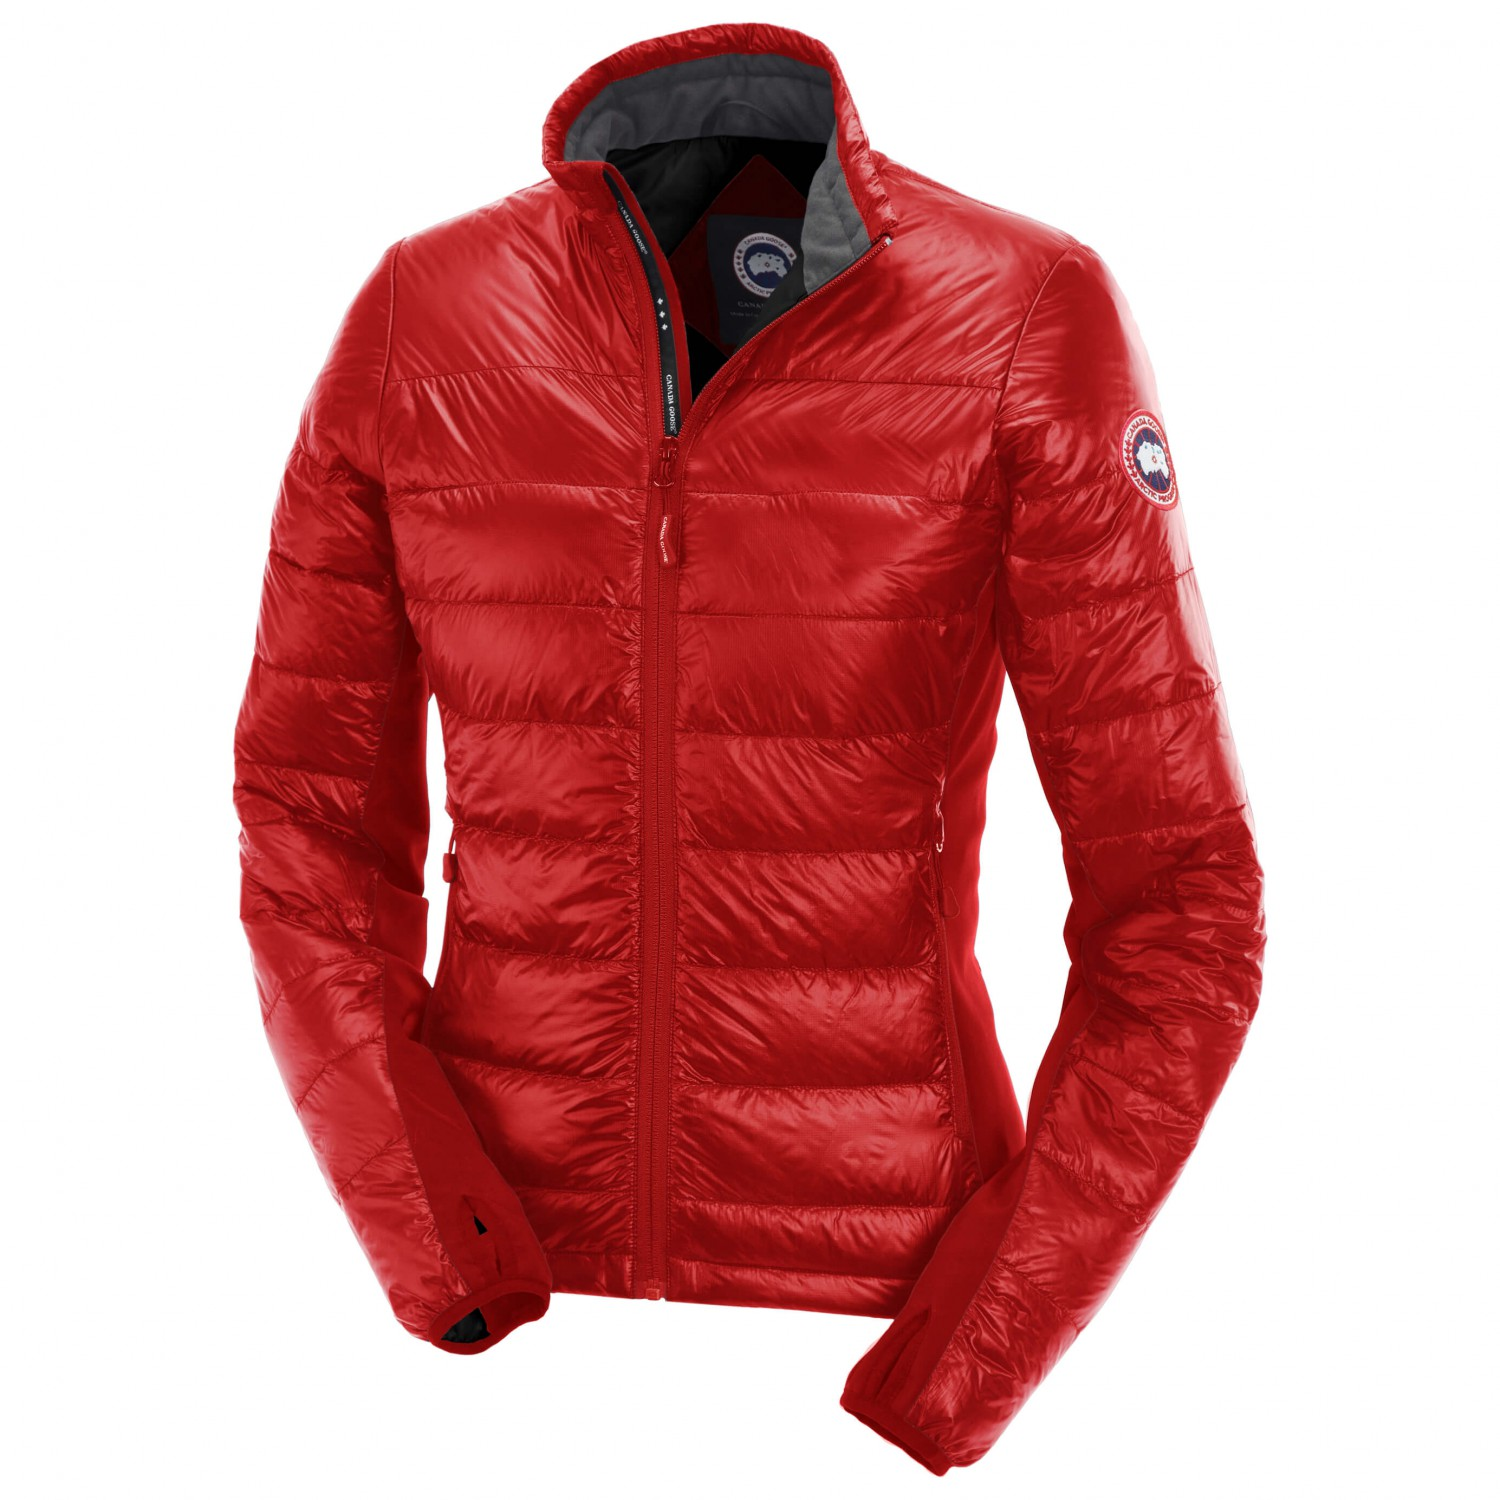 Ladies Hybridge Lite Jacket Winterjacke für Damen qM66Xv